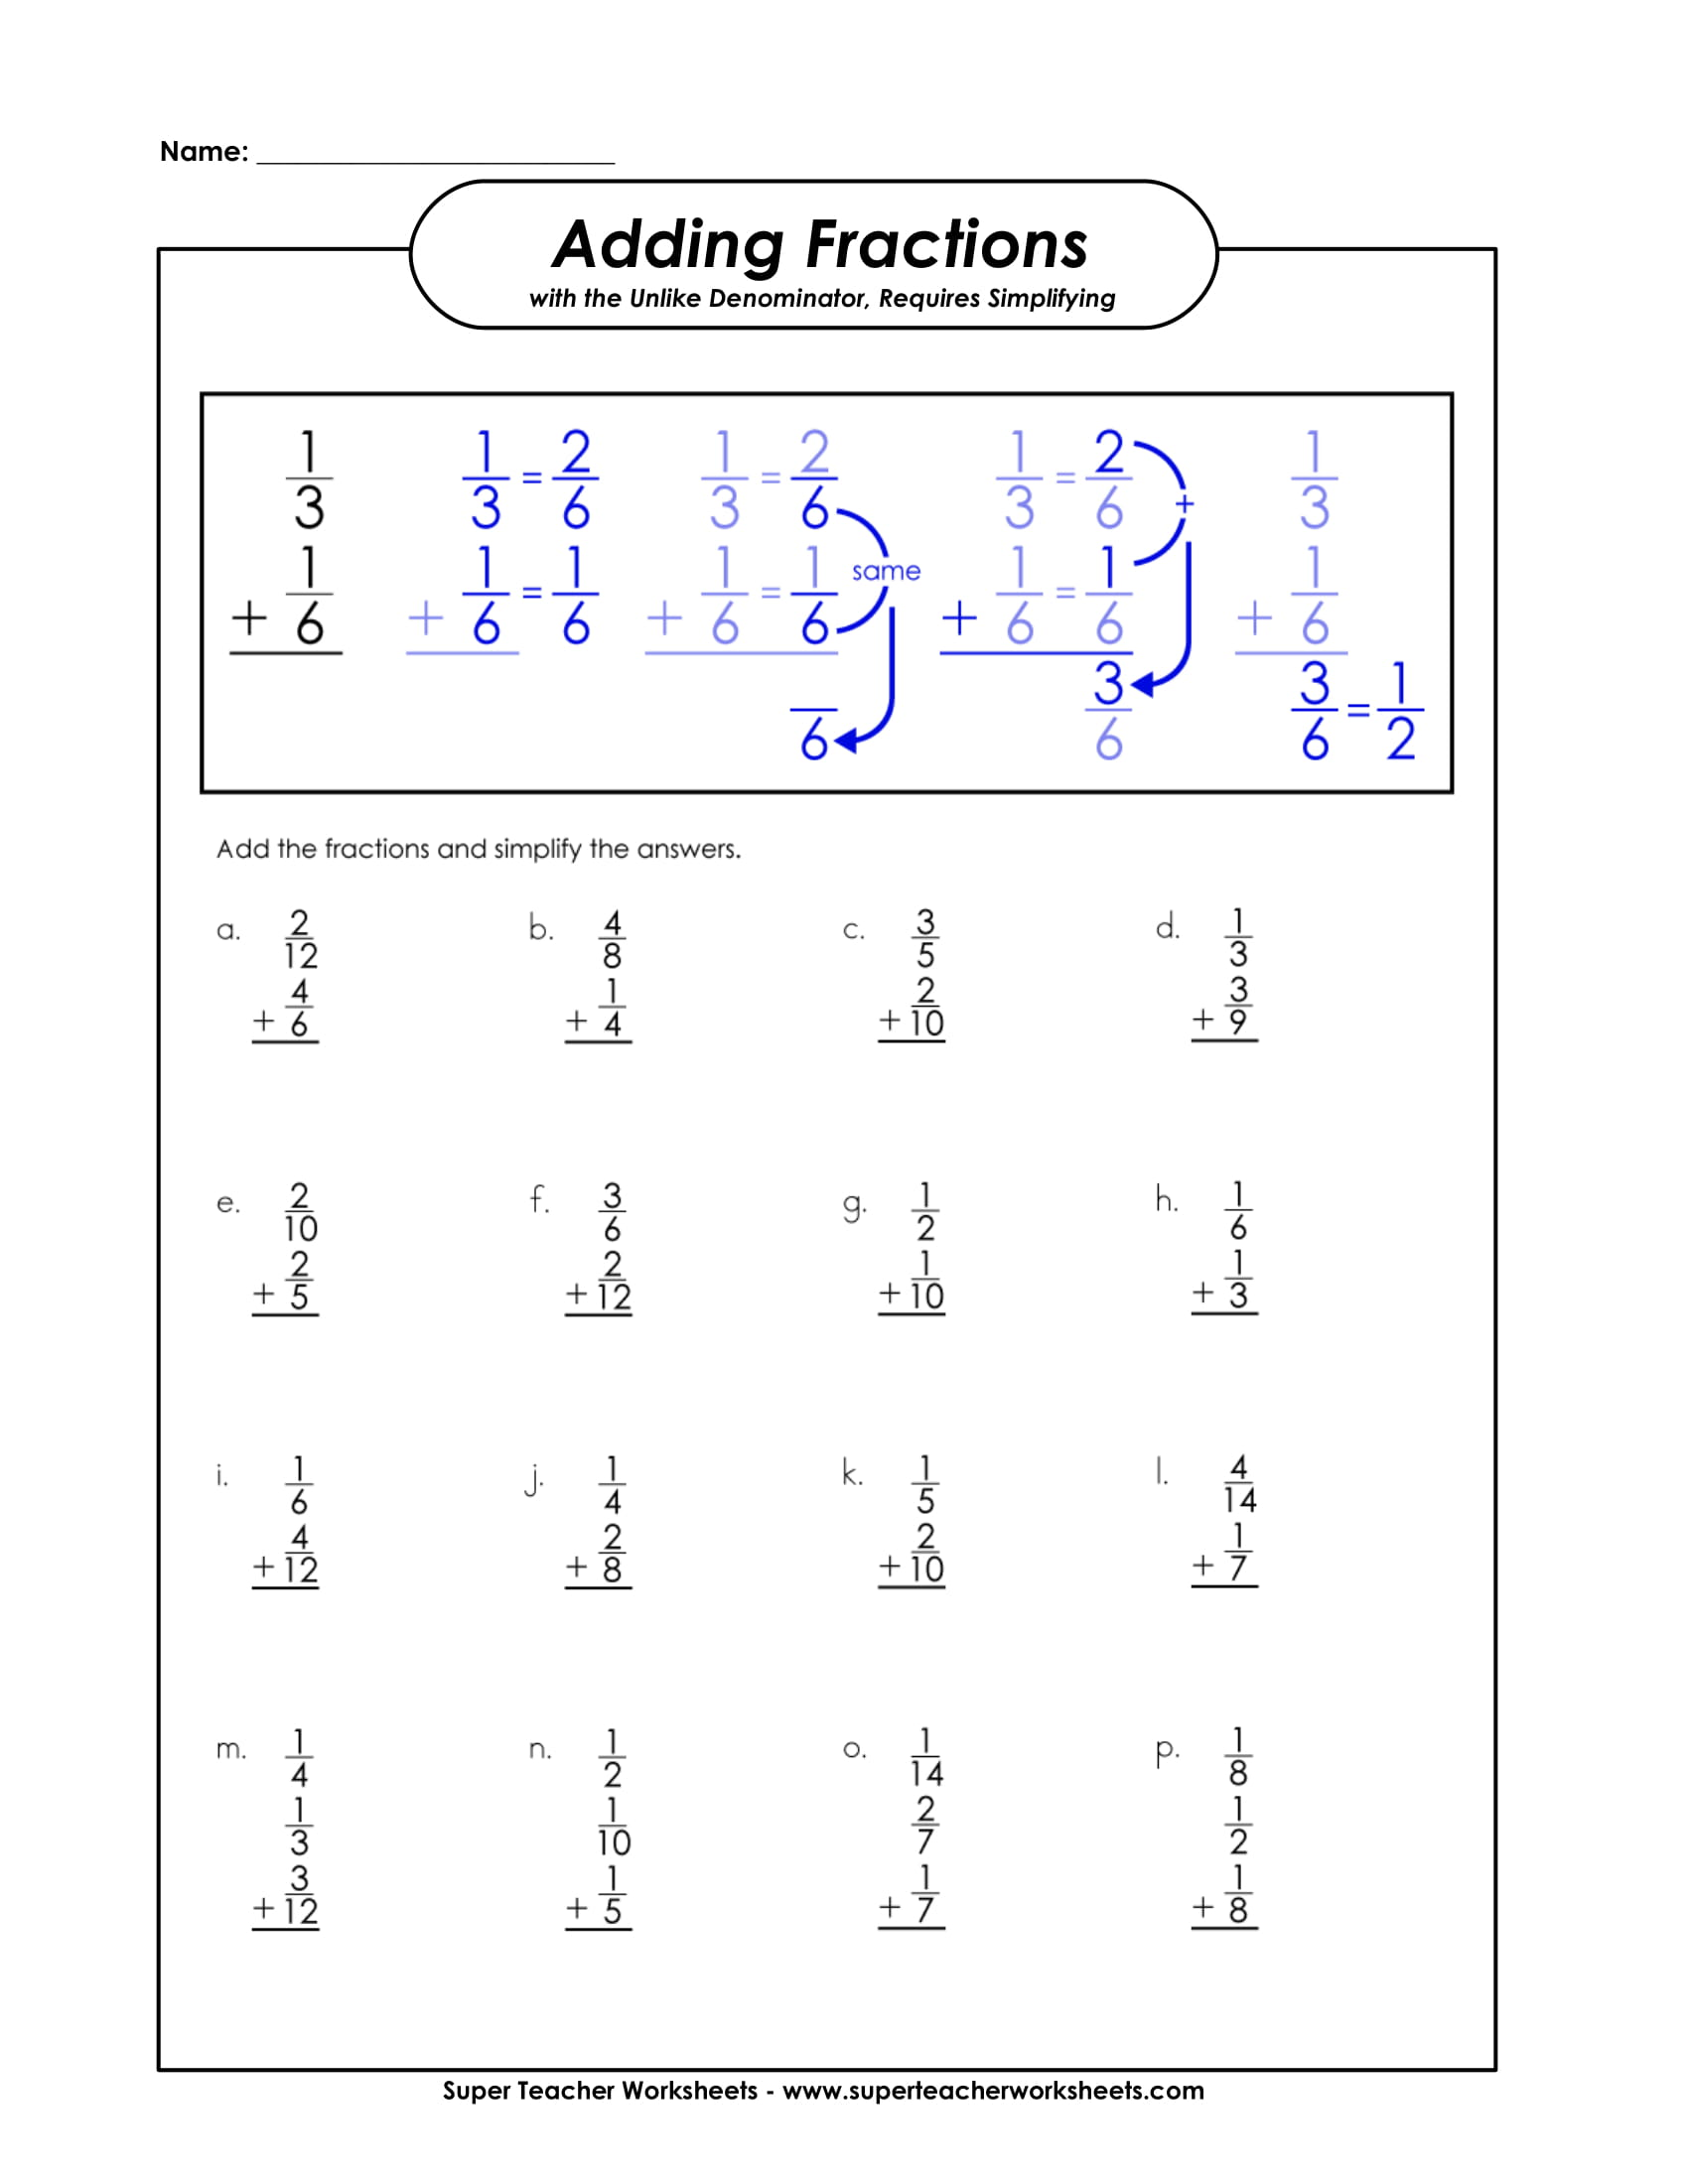 Super Teacher Worksheets Fractions Of Groups Saowen